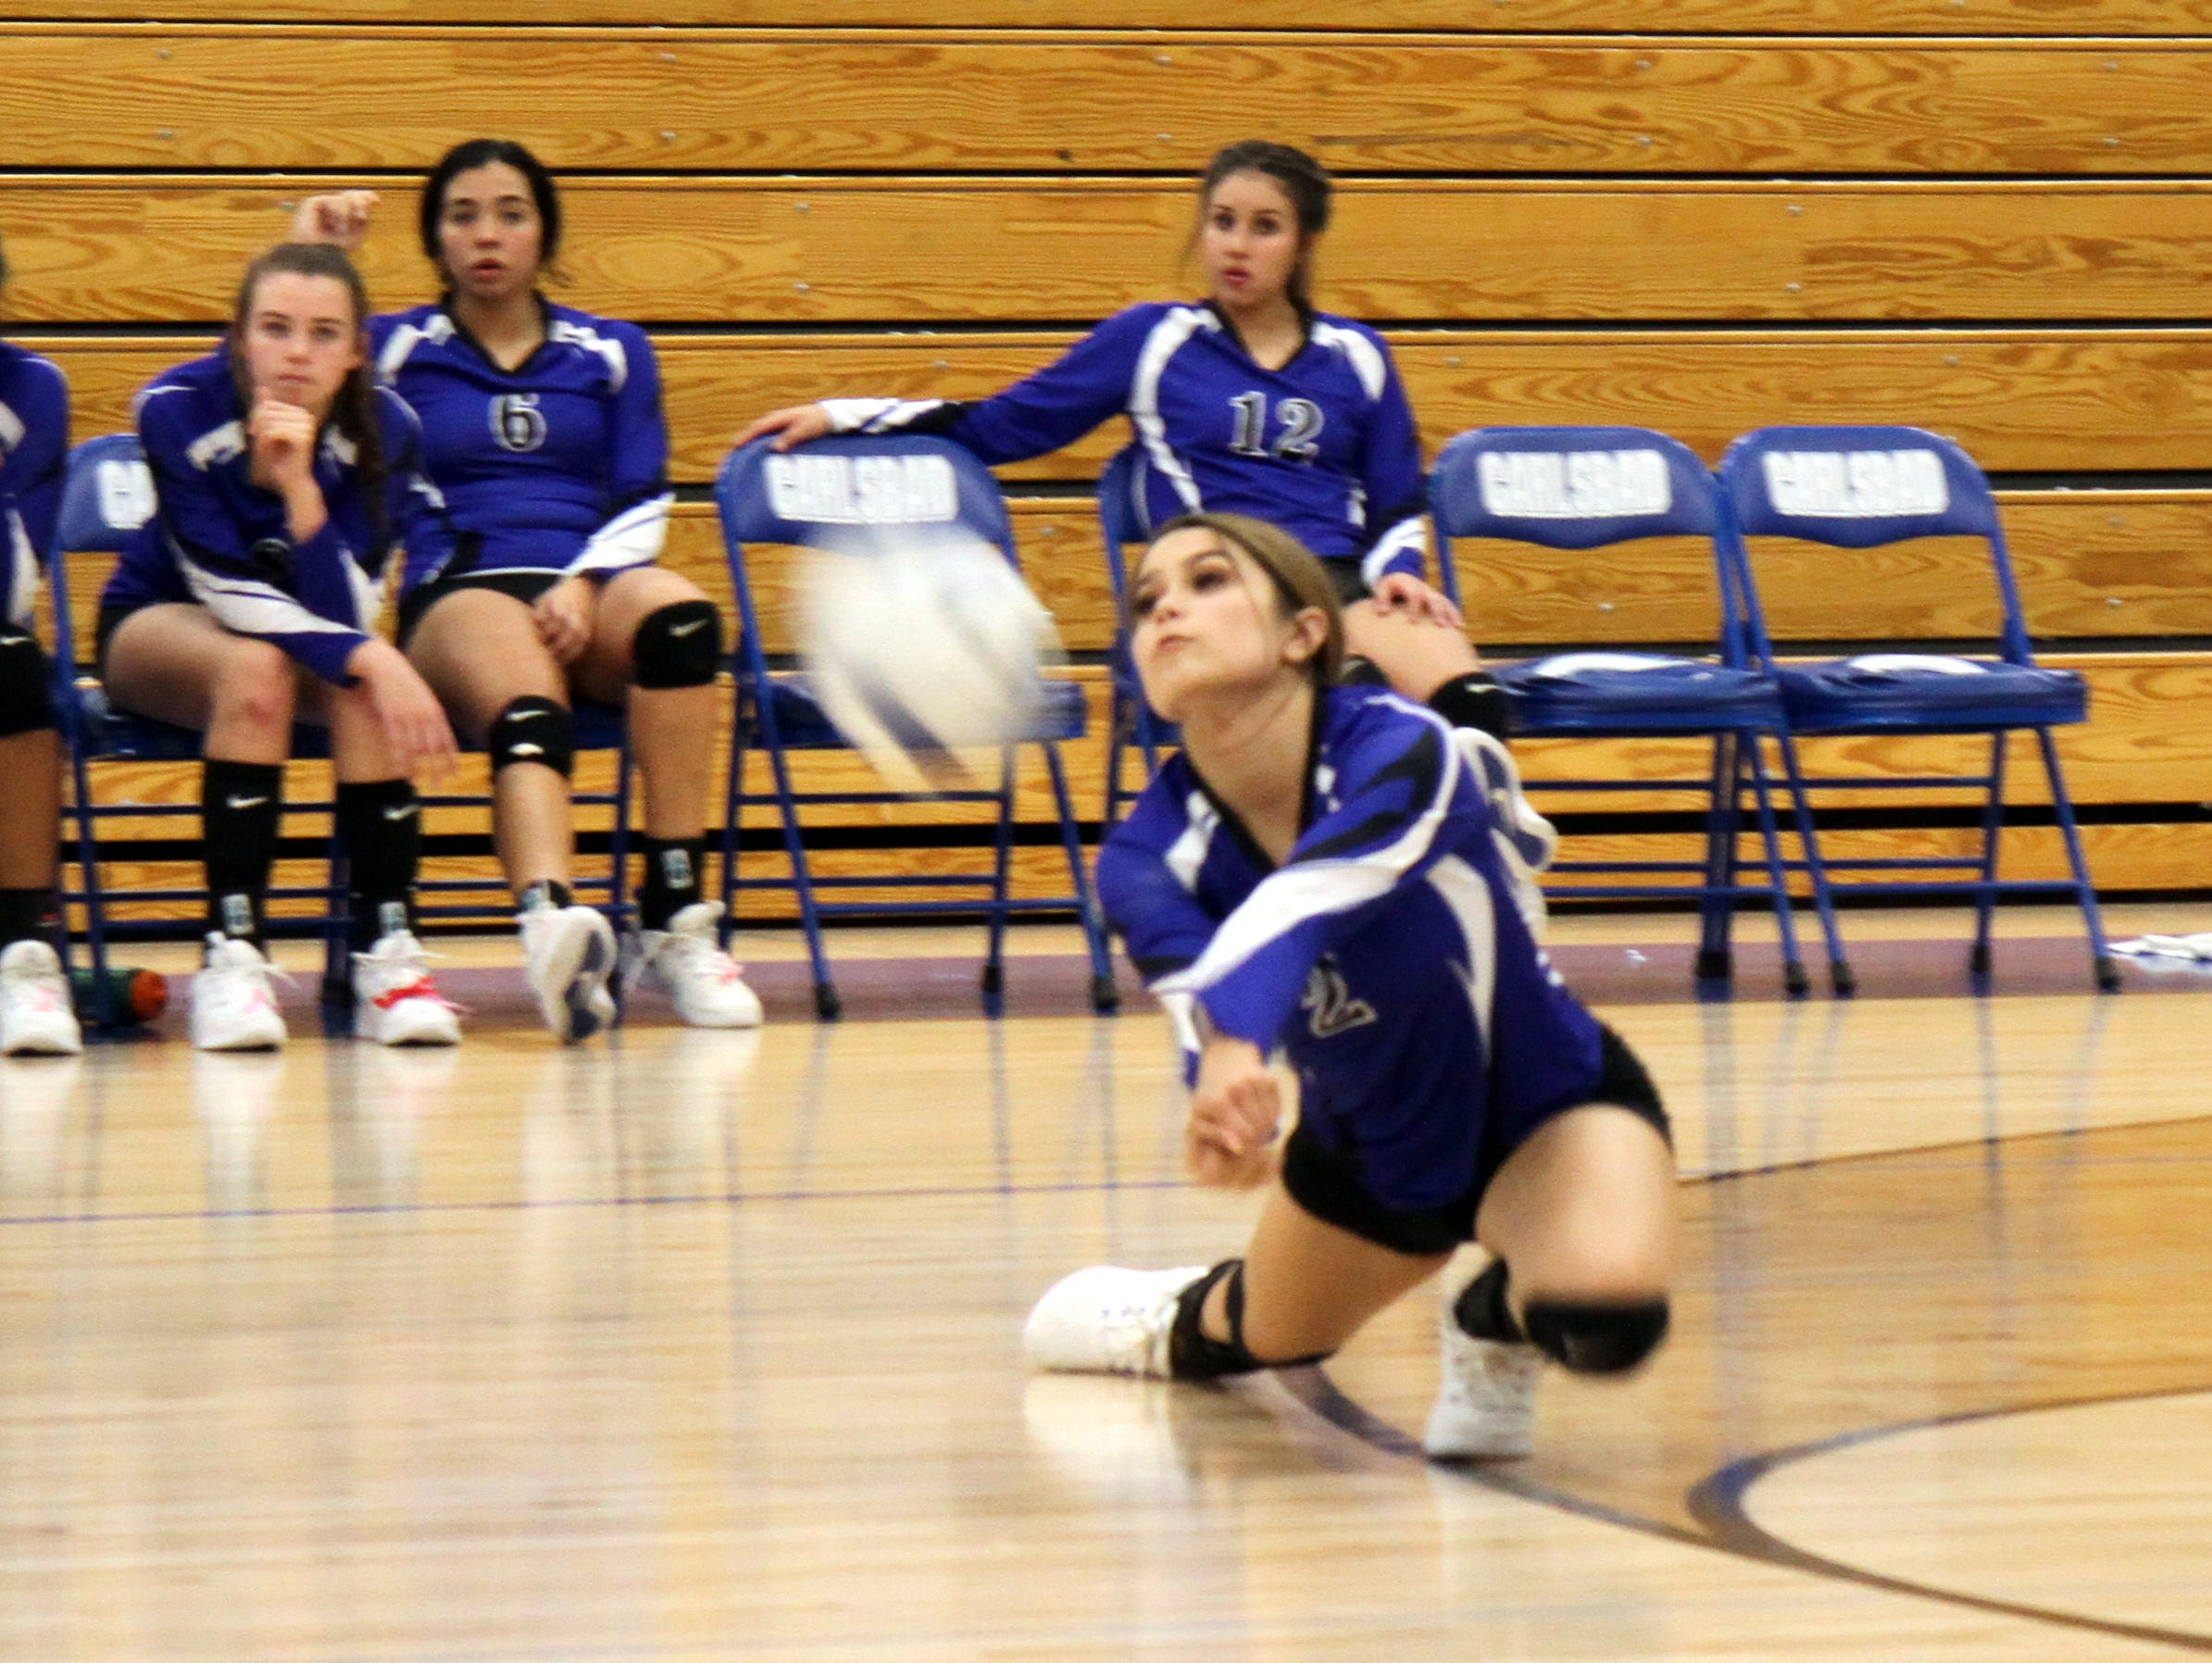 Alycia Cruz dives to save a ball during Tuesday's match against Hobbs.